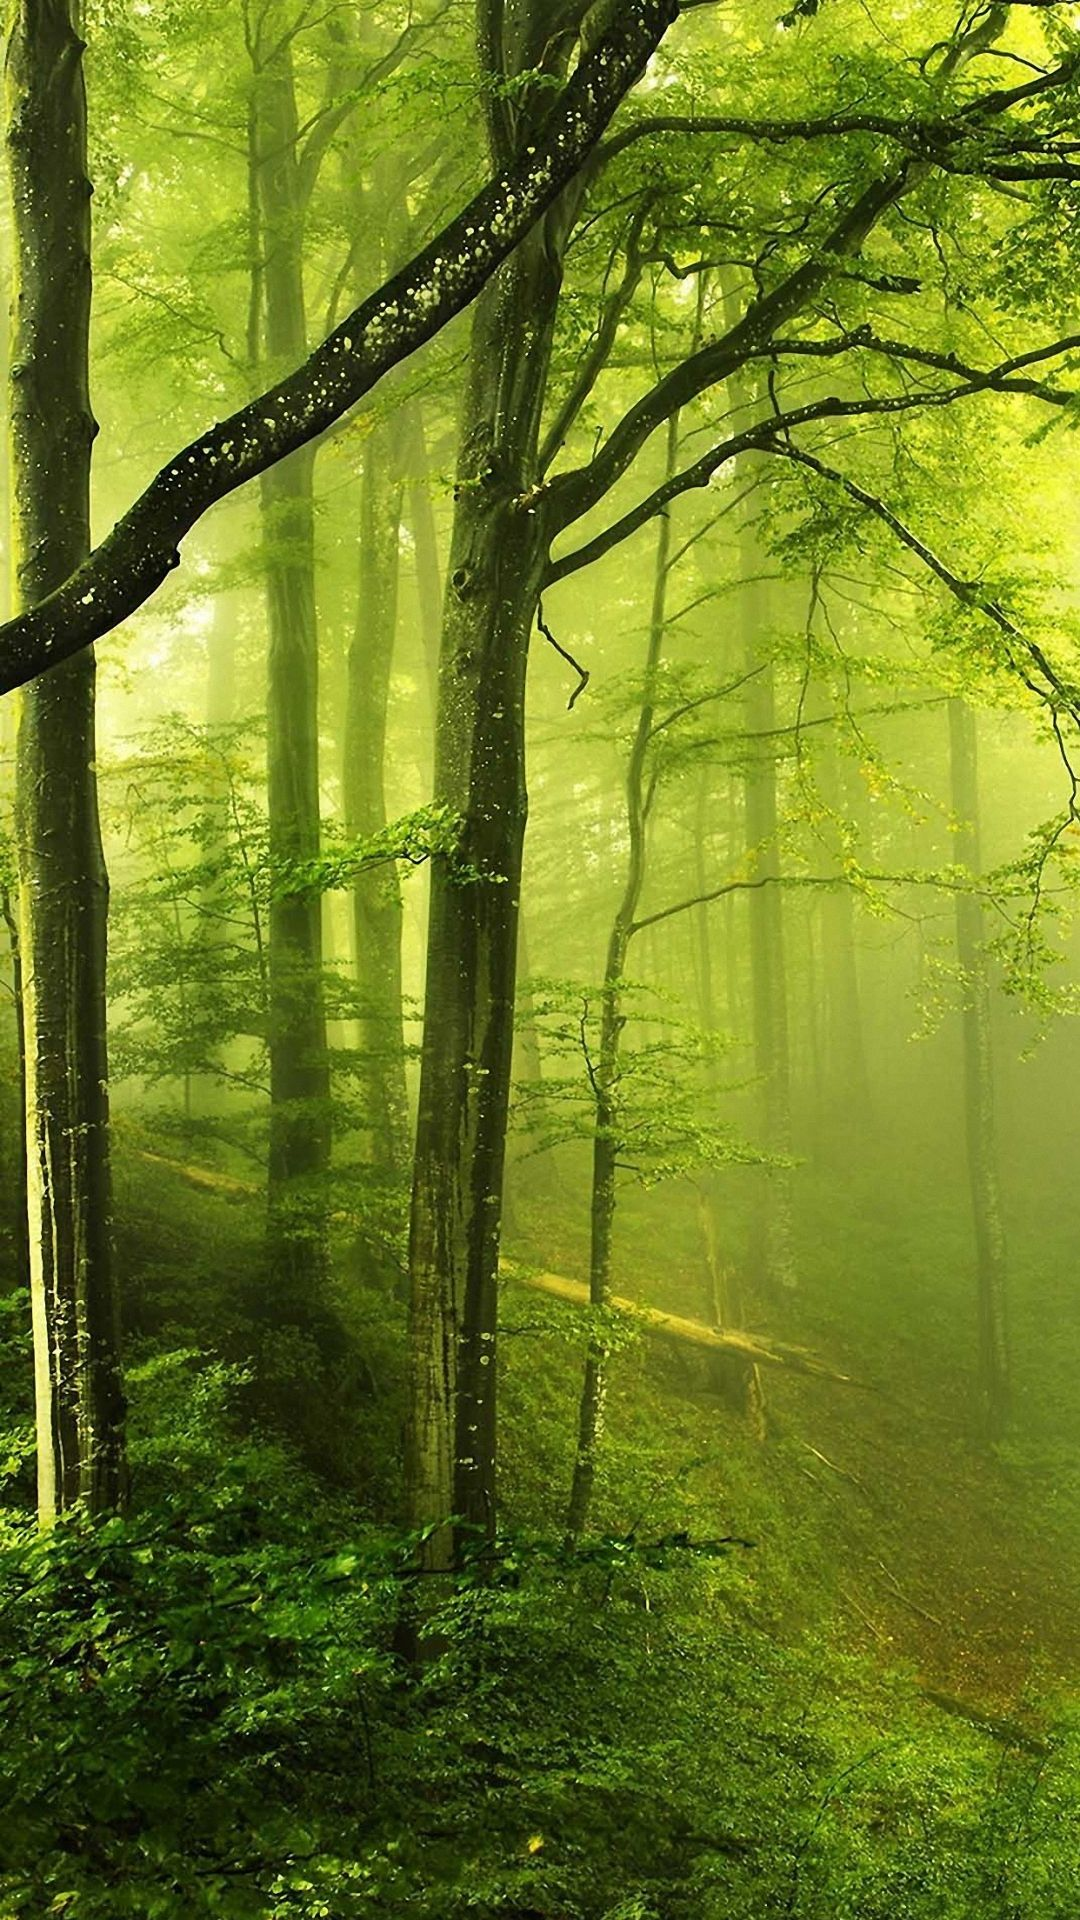 Forest Wallpaper Android In 2020 Forest Wallpaper Forest Photos Beautiful Forest